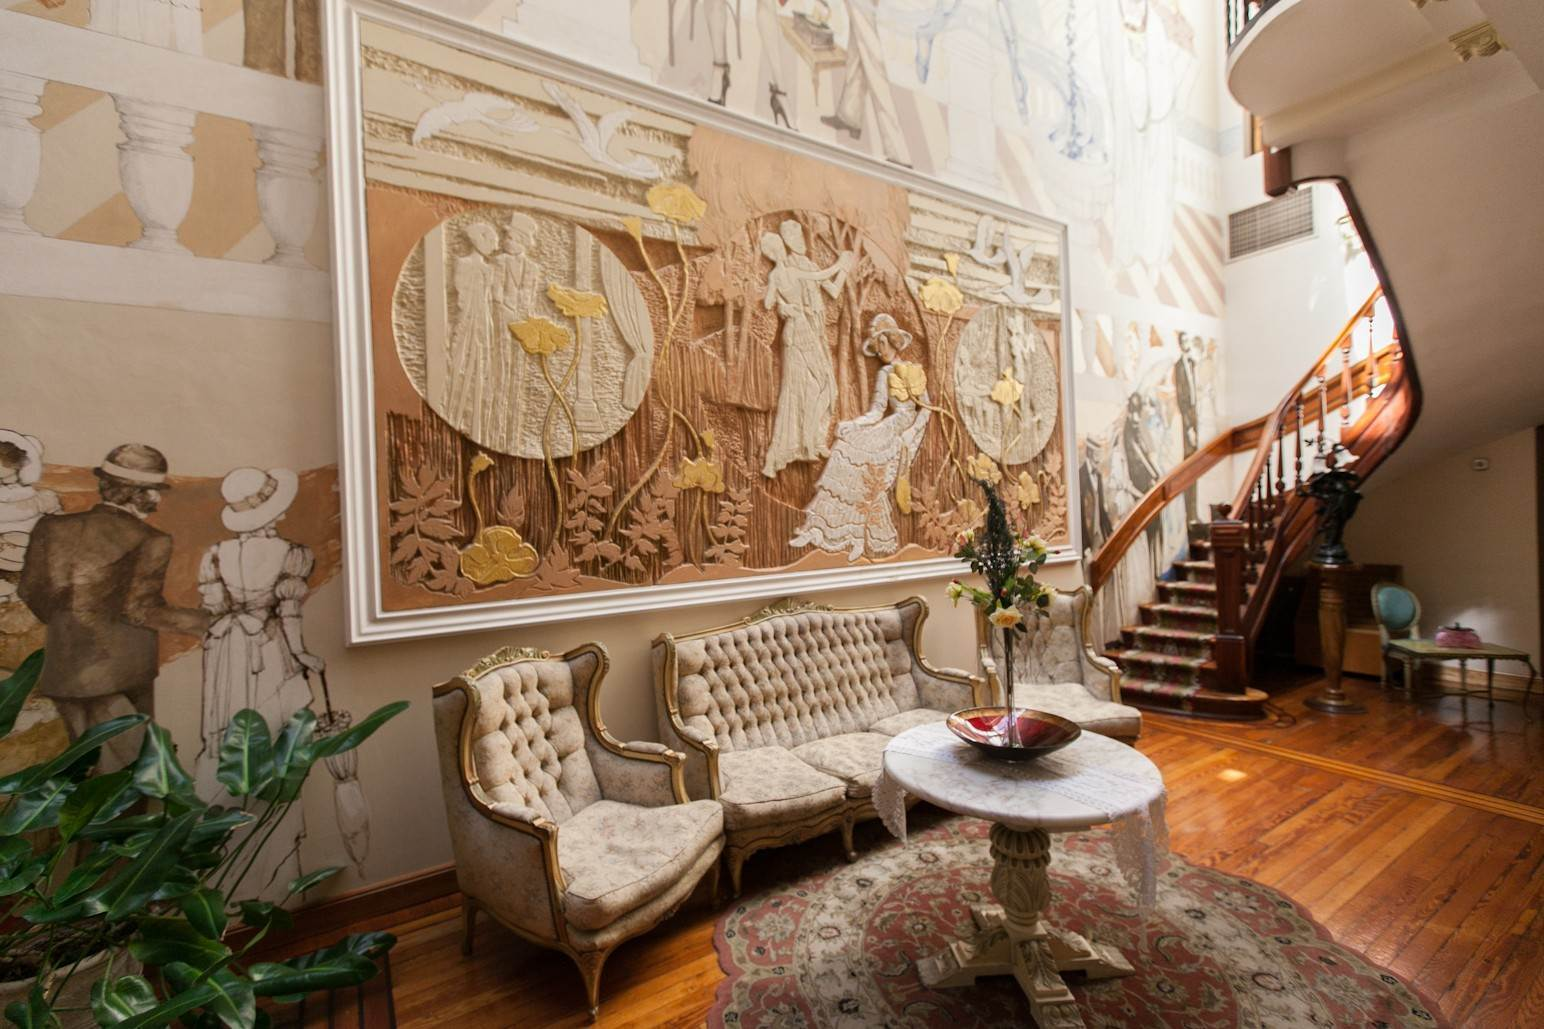 Single Family Home 为 销售 在 Enchanting~Completely Refurbished Mansion - Great Feng Shui! San Telmo, Ciudad De Buenos Aires, 布宜诺斯艾利斯, 阿根廷